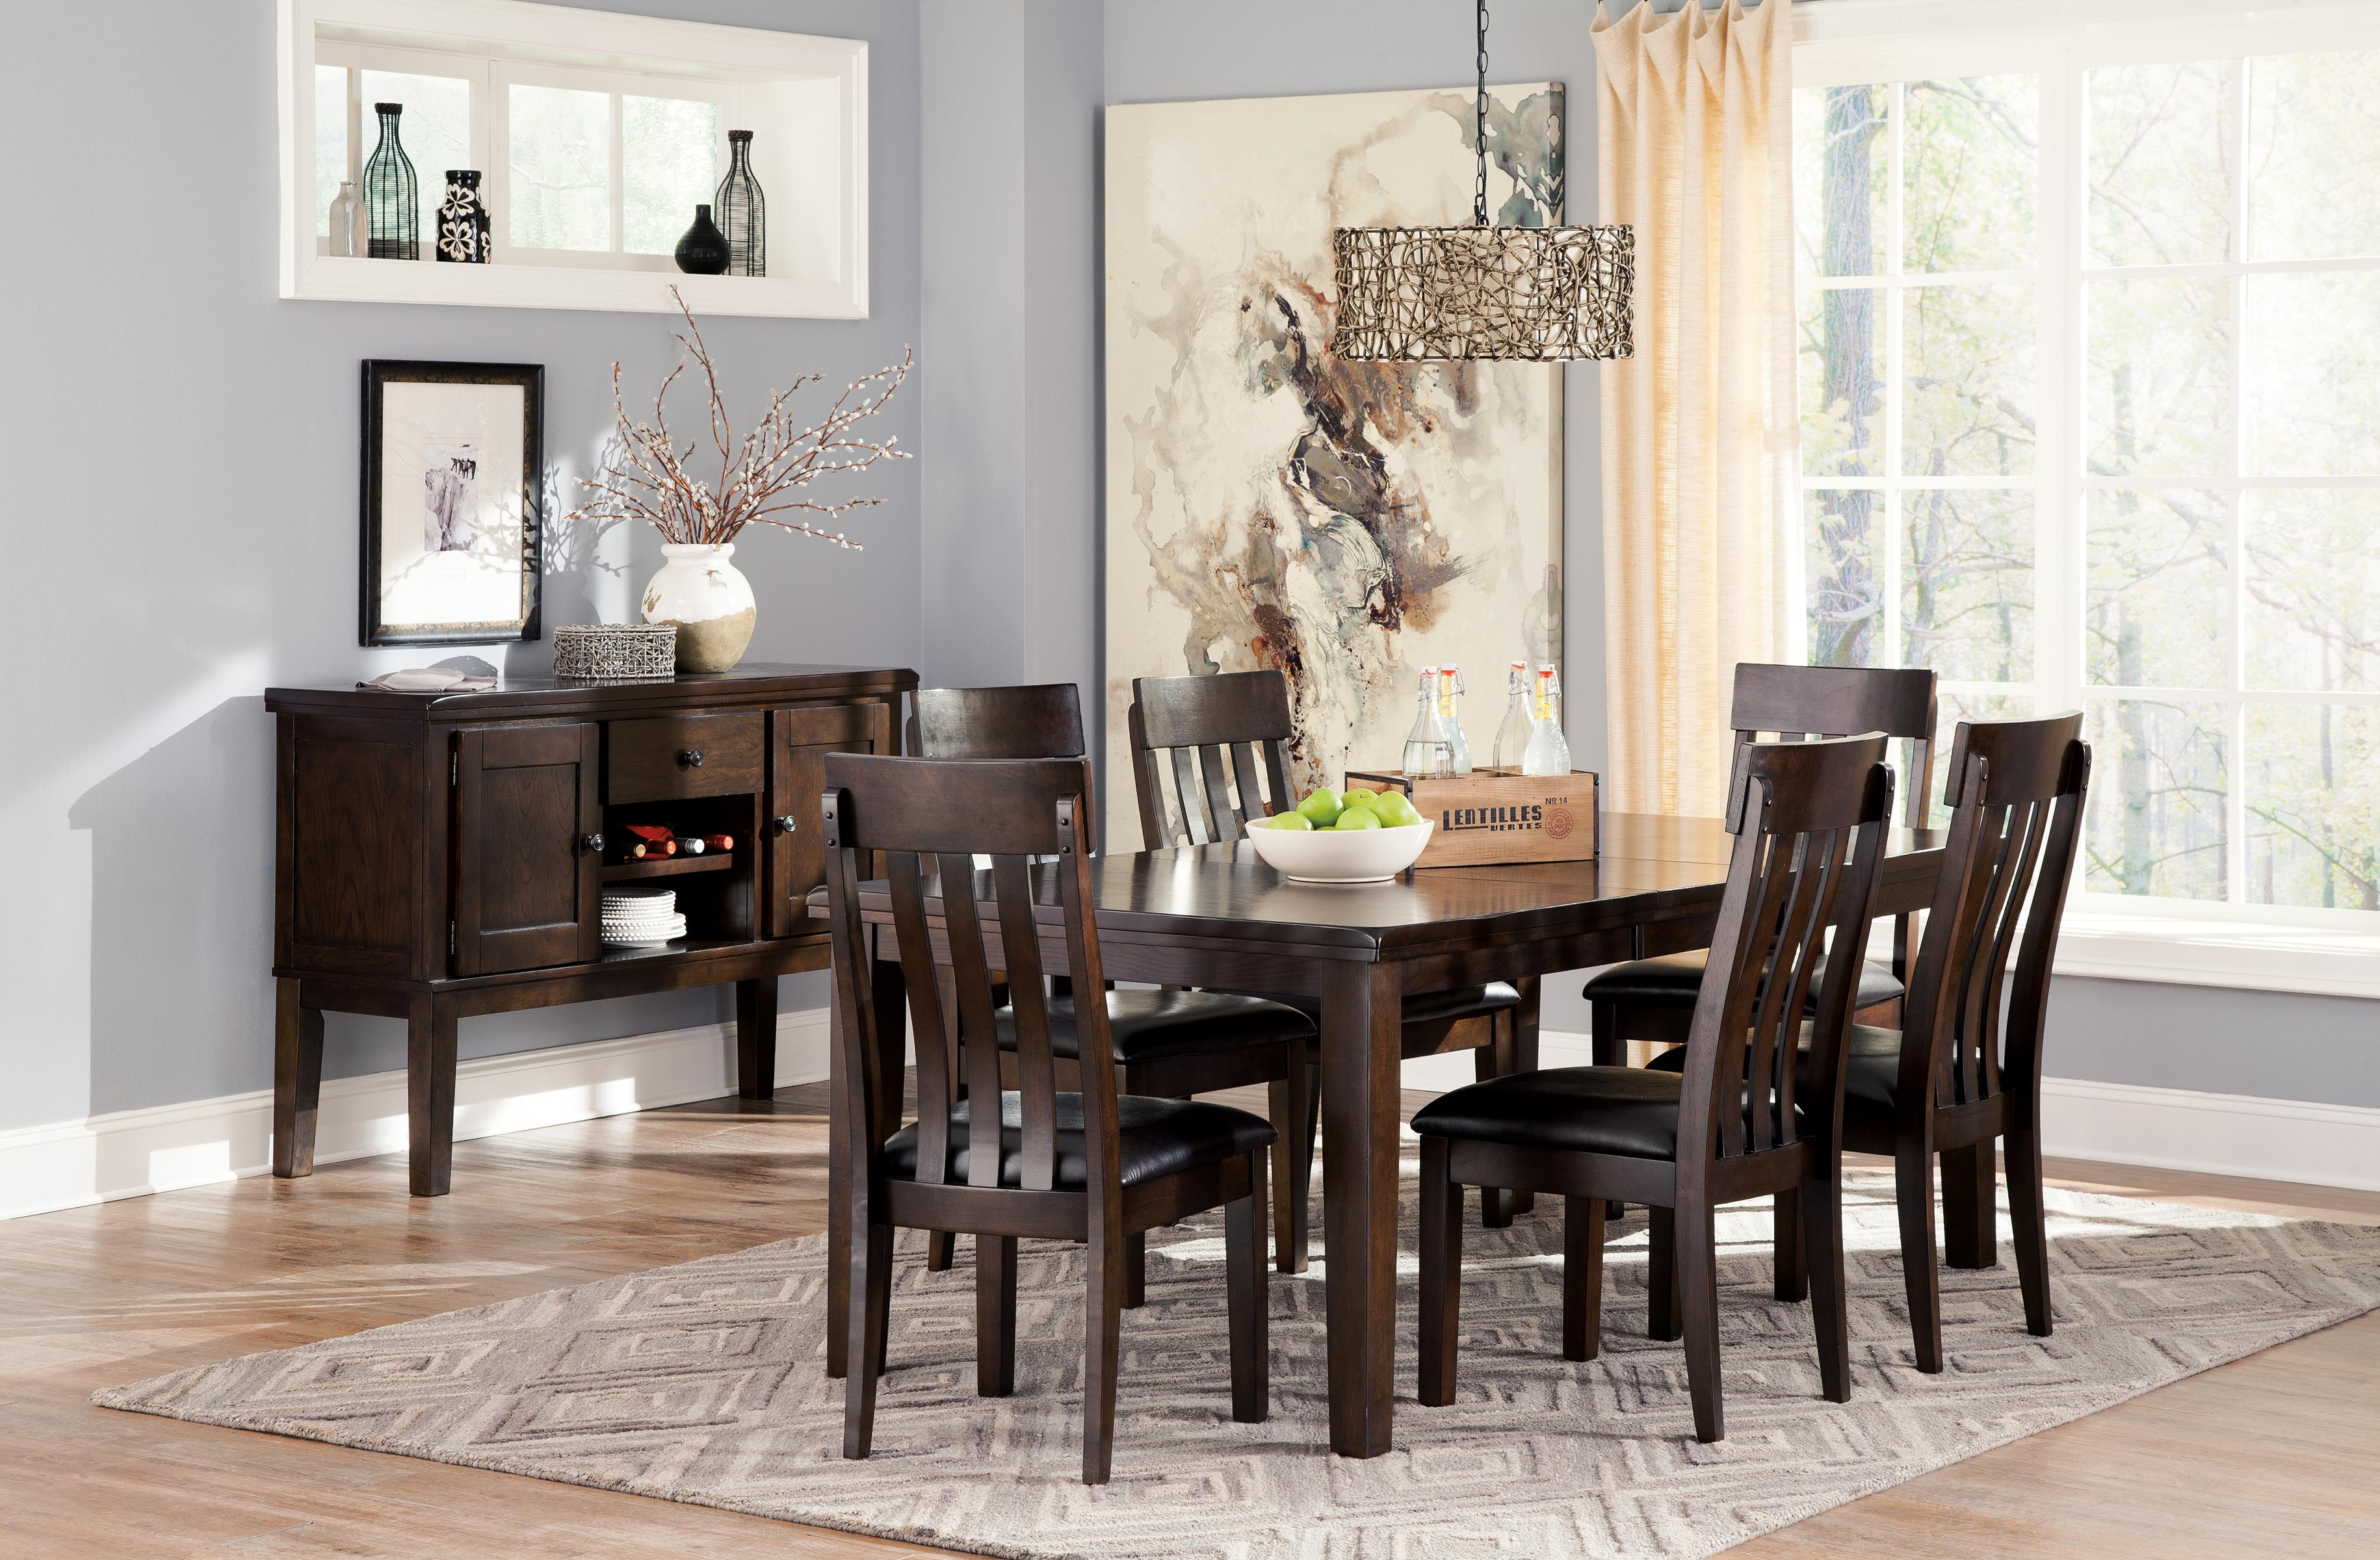 Haddigan Formal Dining Room Group by Signature Design by Ashley at Reid's Furniture